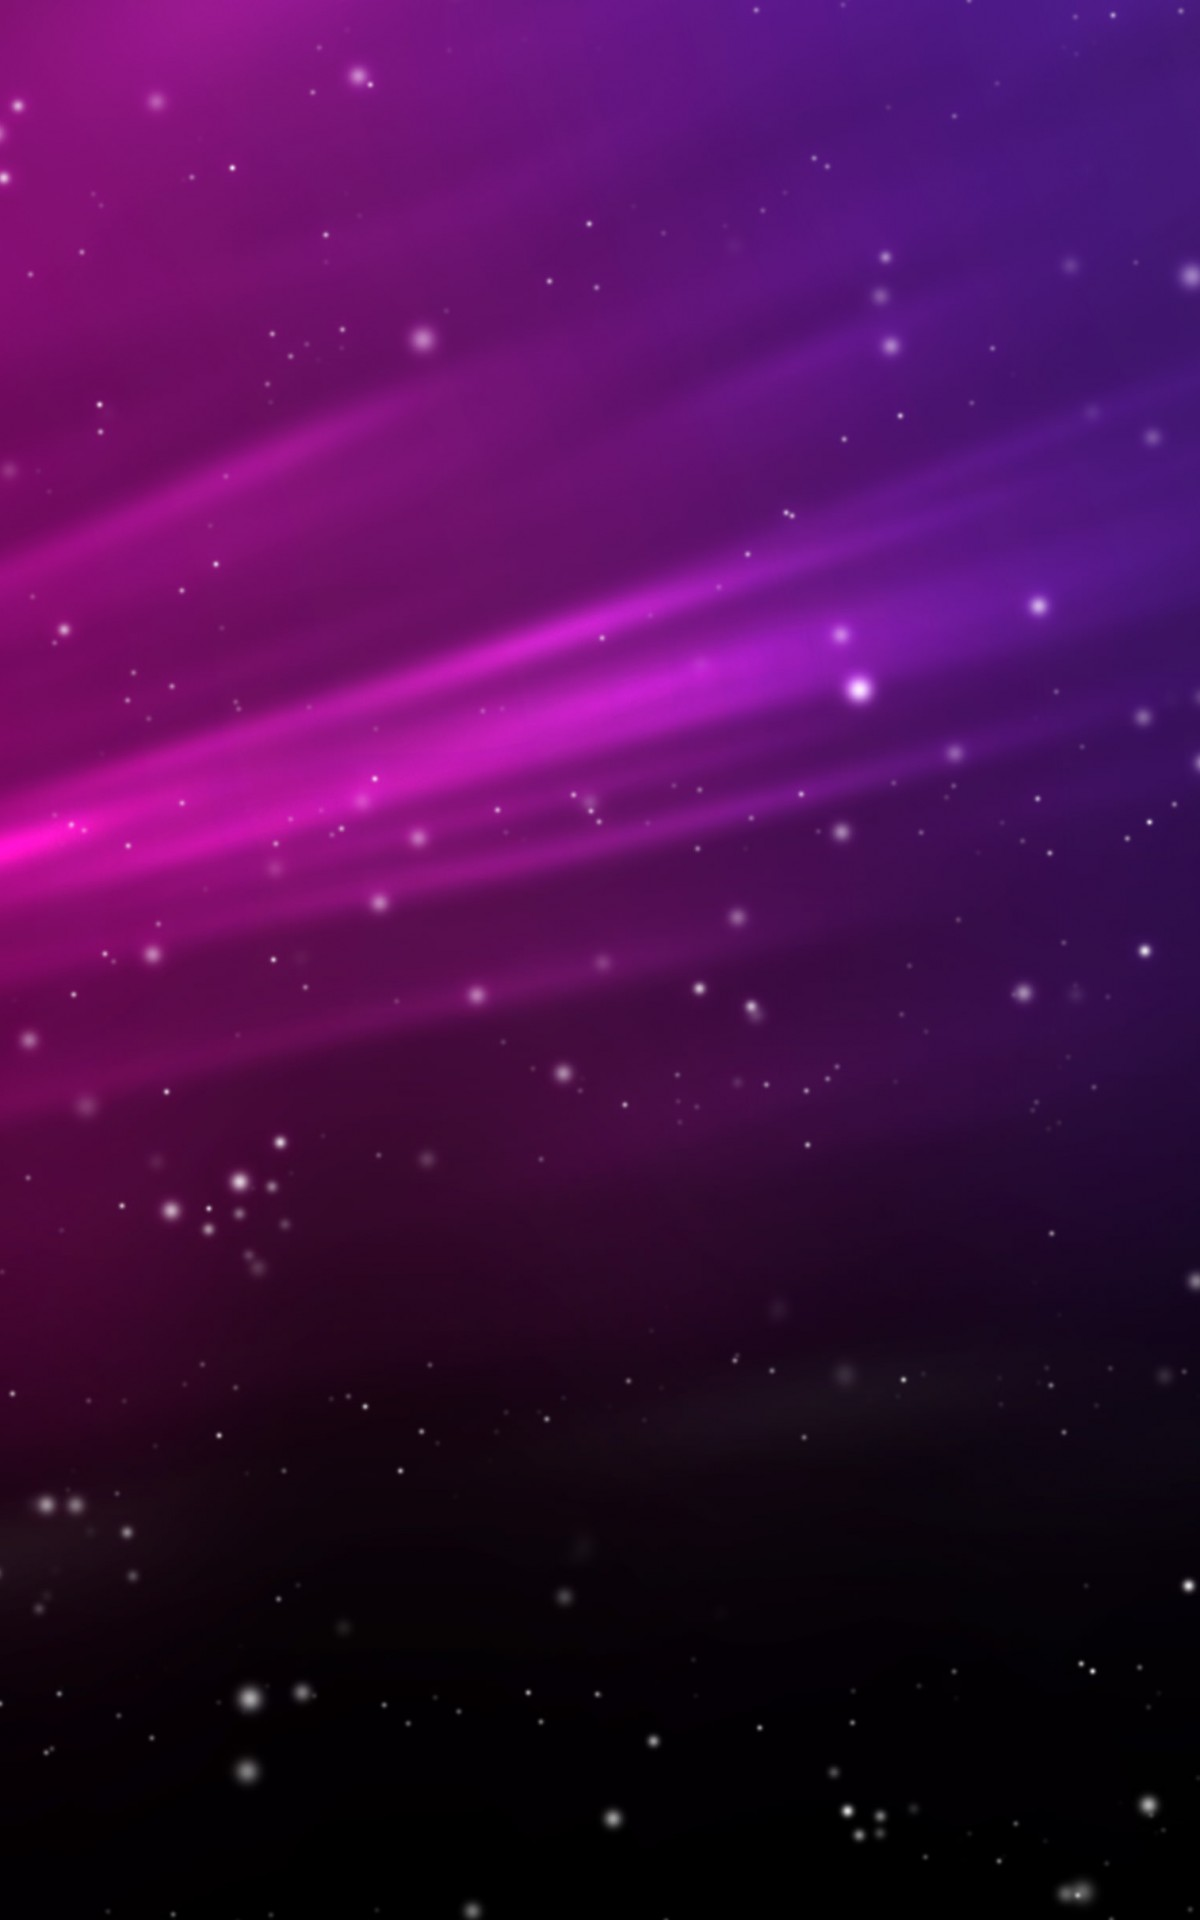 purple aurora sparks wallpaper for kindle fire hdx 111 533jpg 1200x1920